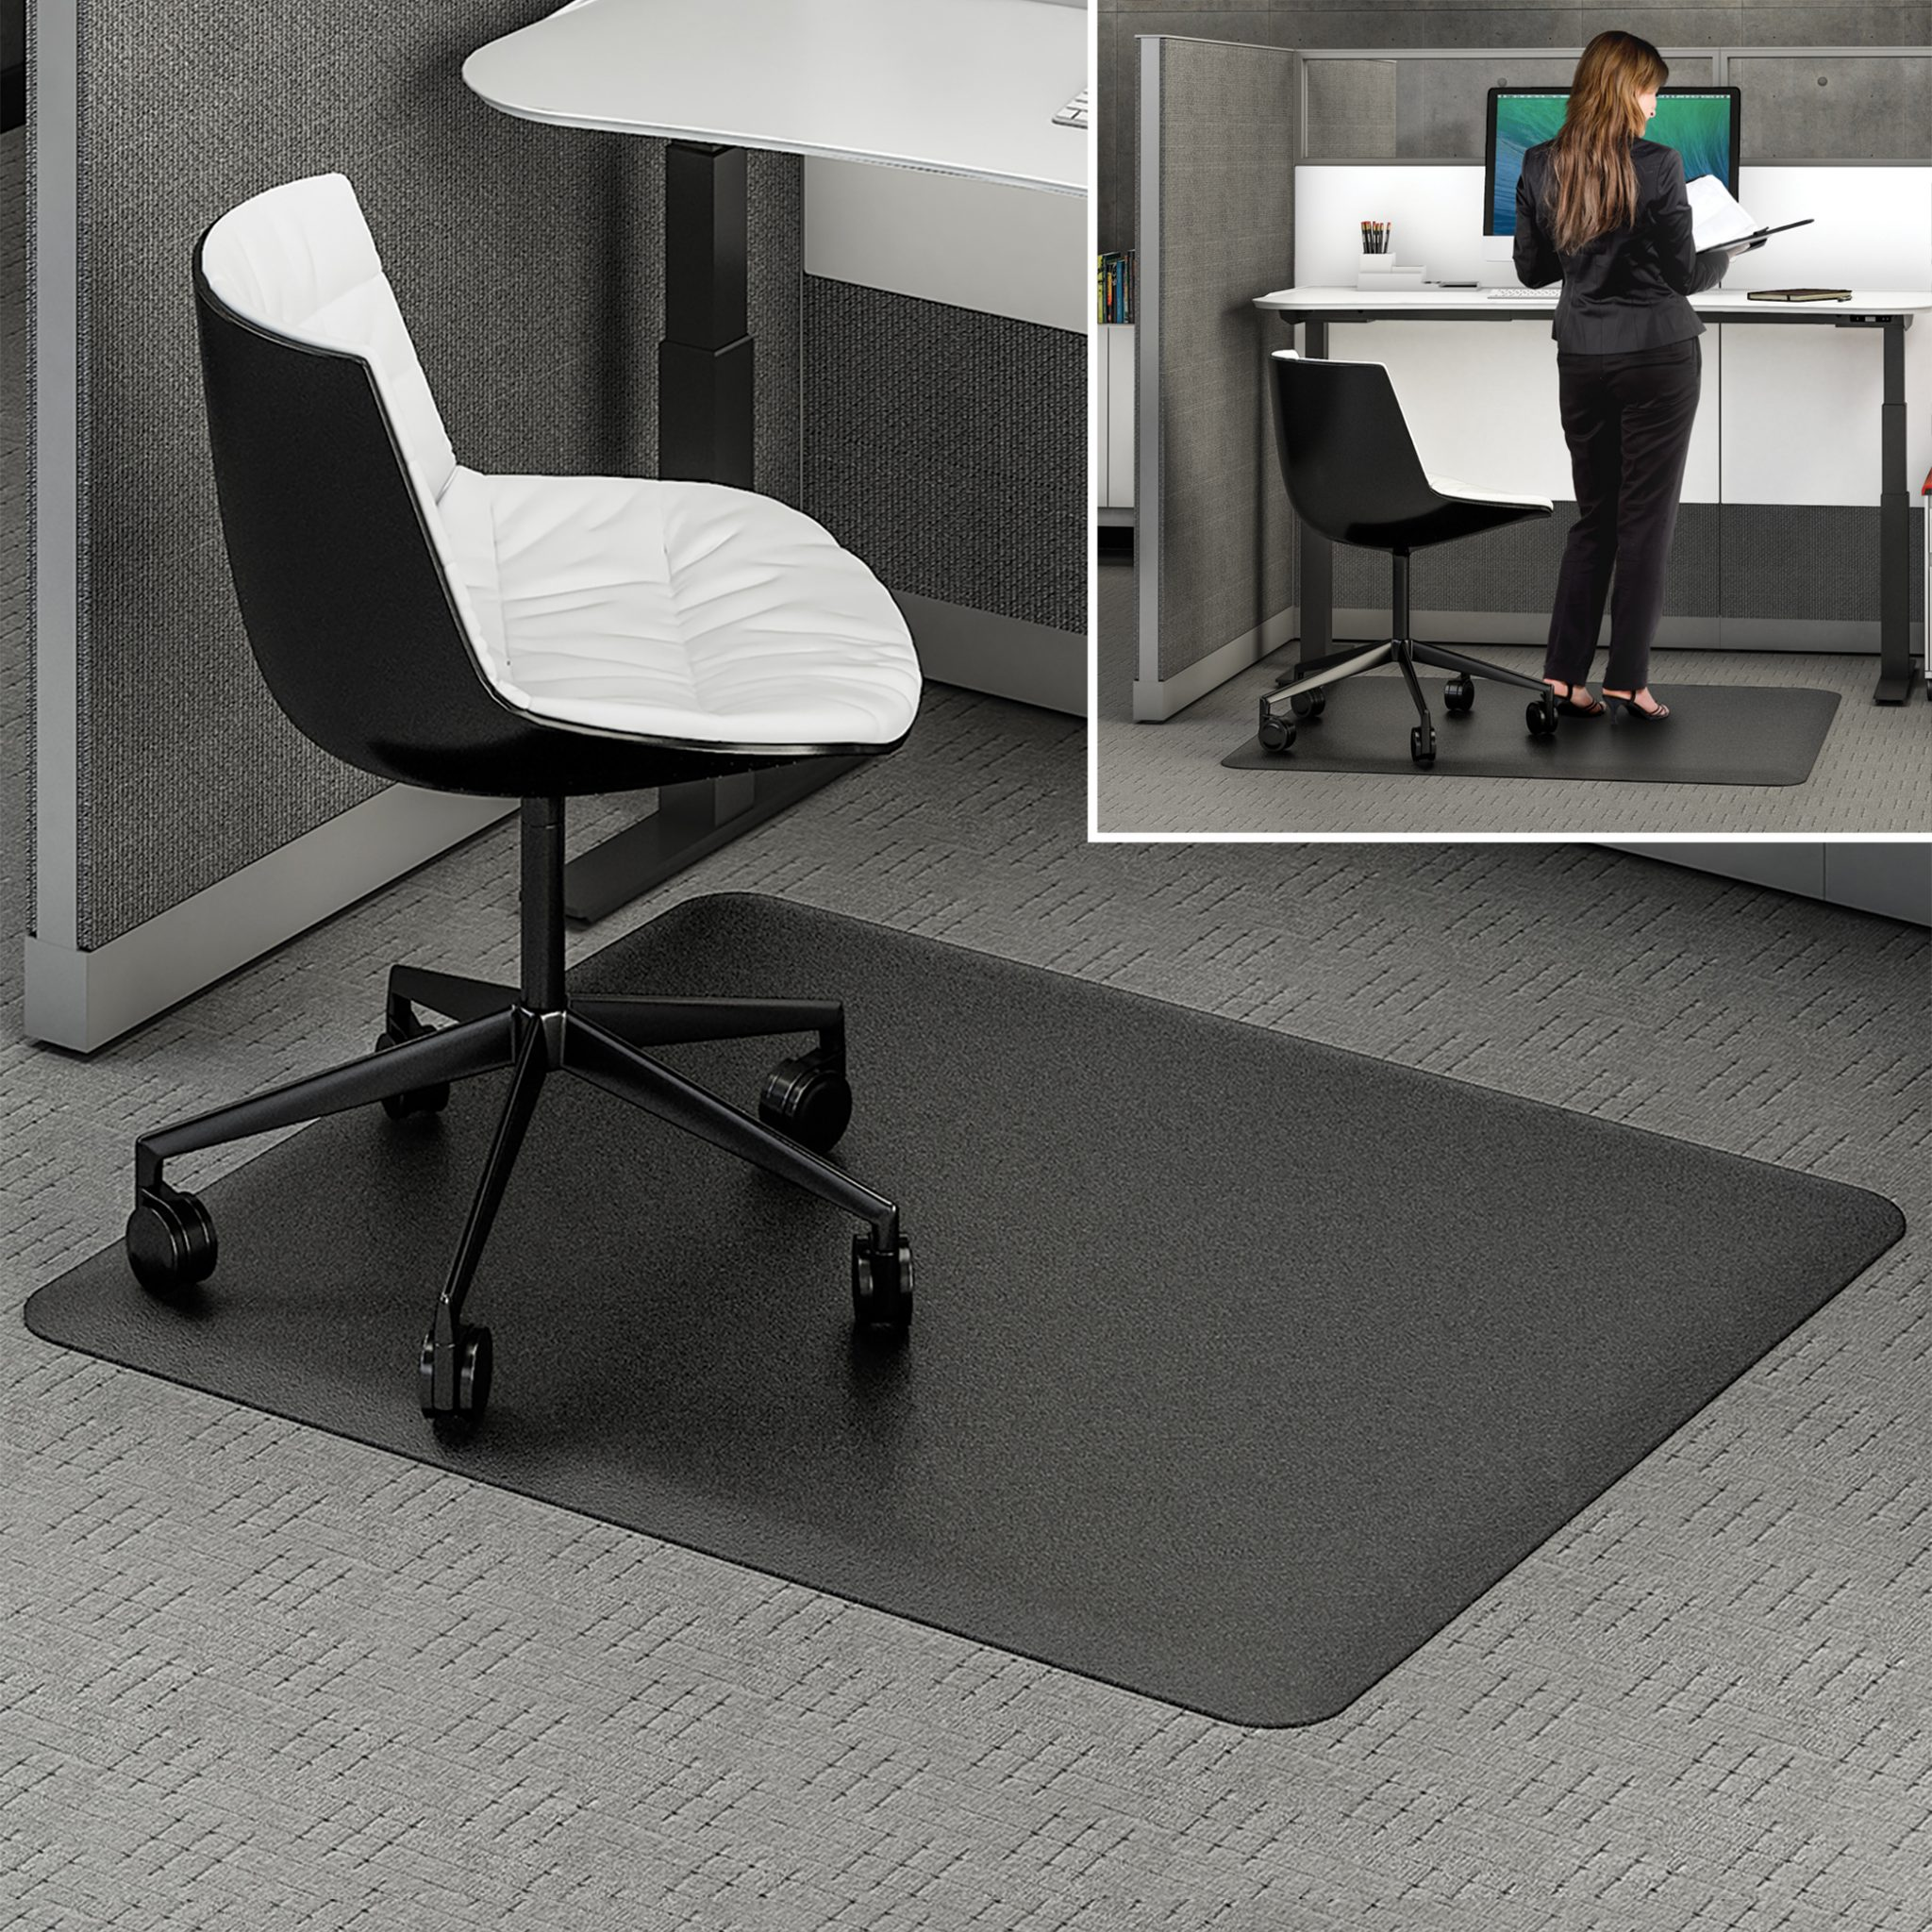 mats chair walmart mat hardwood with desk floors for roller office floor